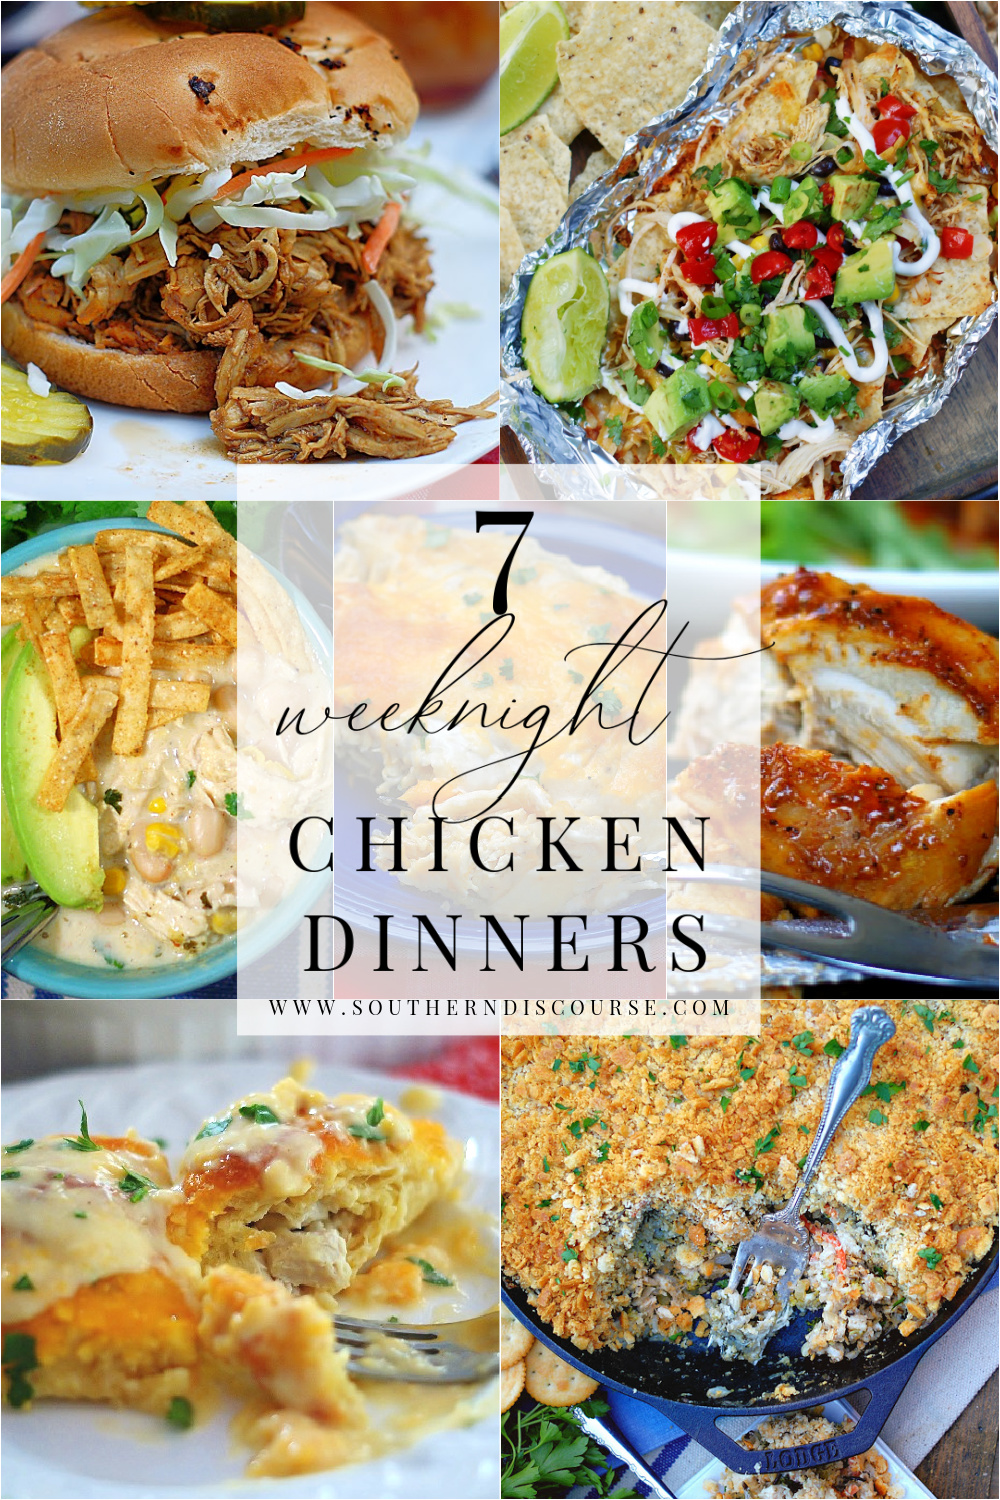 Enjoy these 7 easy chicken dinners for busy weeknights.  From crock pot BBQ chicken sandwiches & Tex Mec foil packet nachos to family style favorites like chicken & wild rice casserole or chicken stuffed crescent rolls, these easy chicken meals make every night delicious!